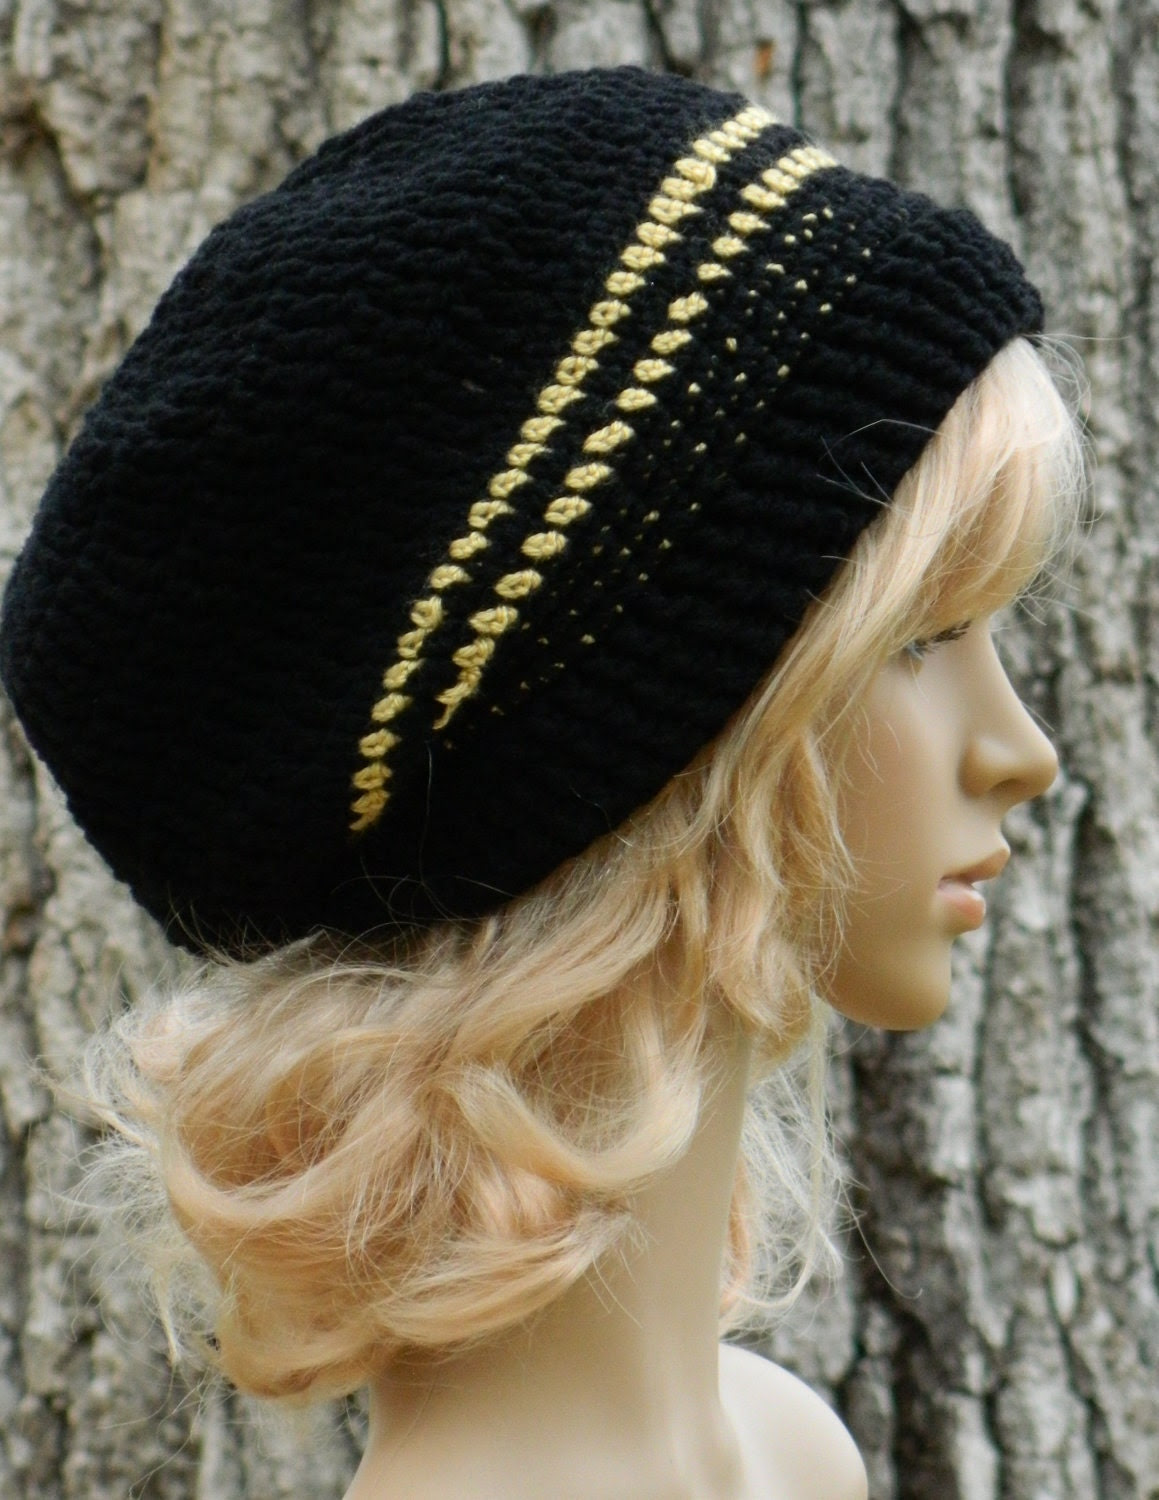 Winter Slouchy Beanie Boho For Women Men Teens In Black and Metalic Gold